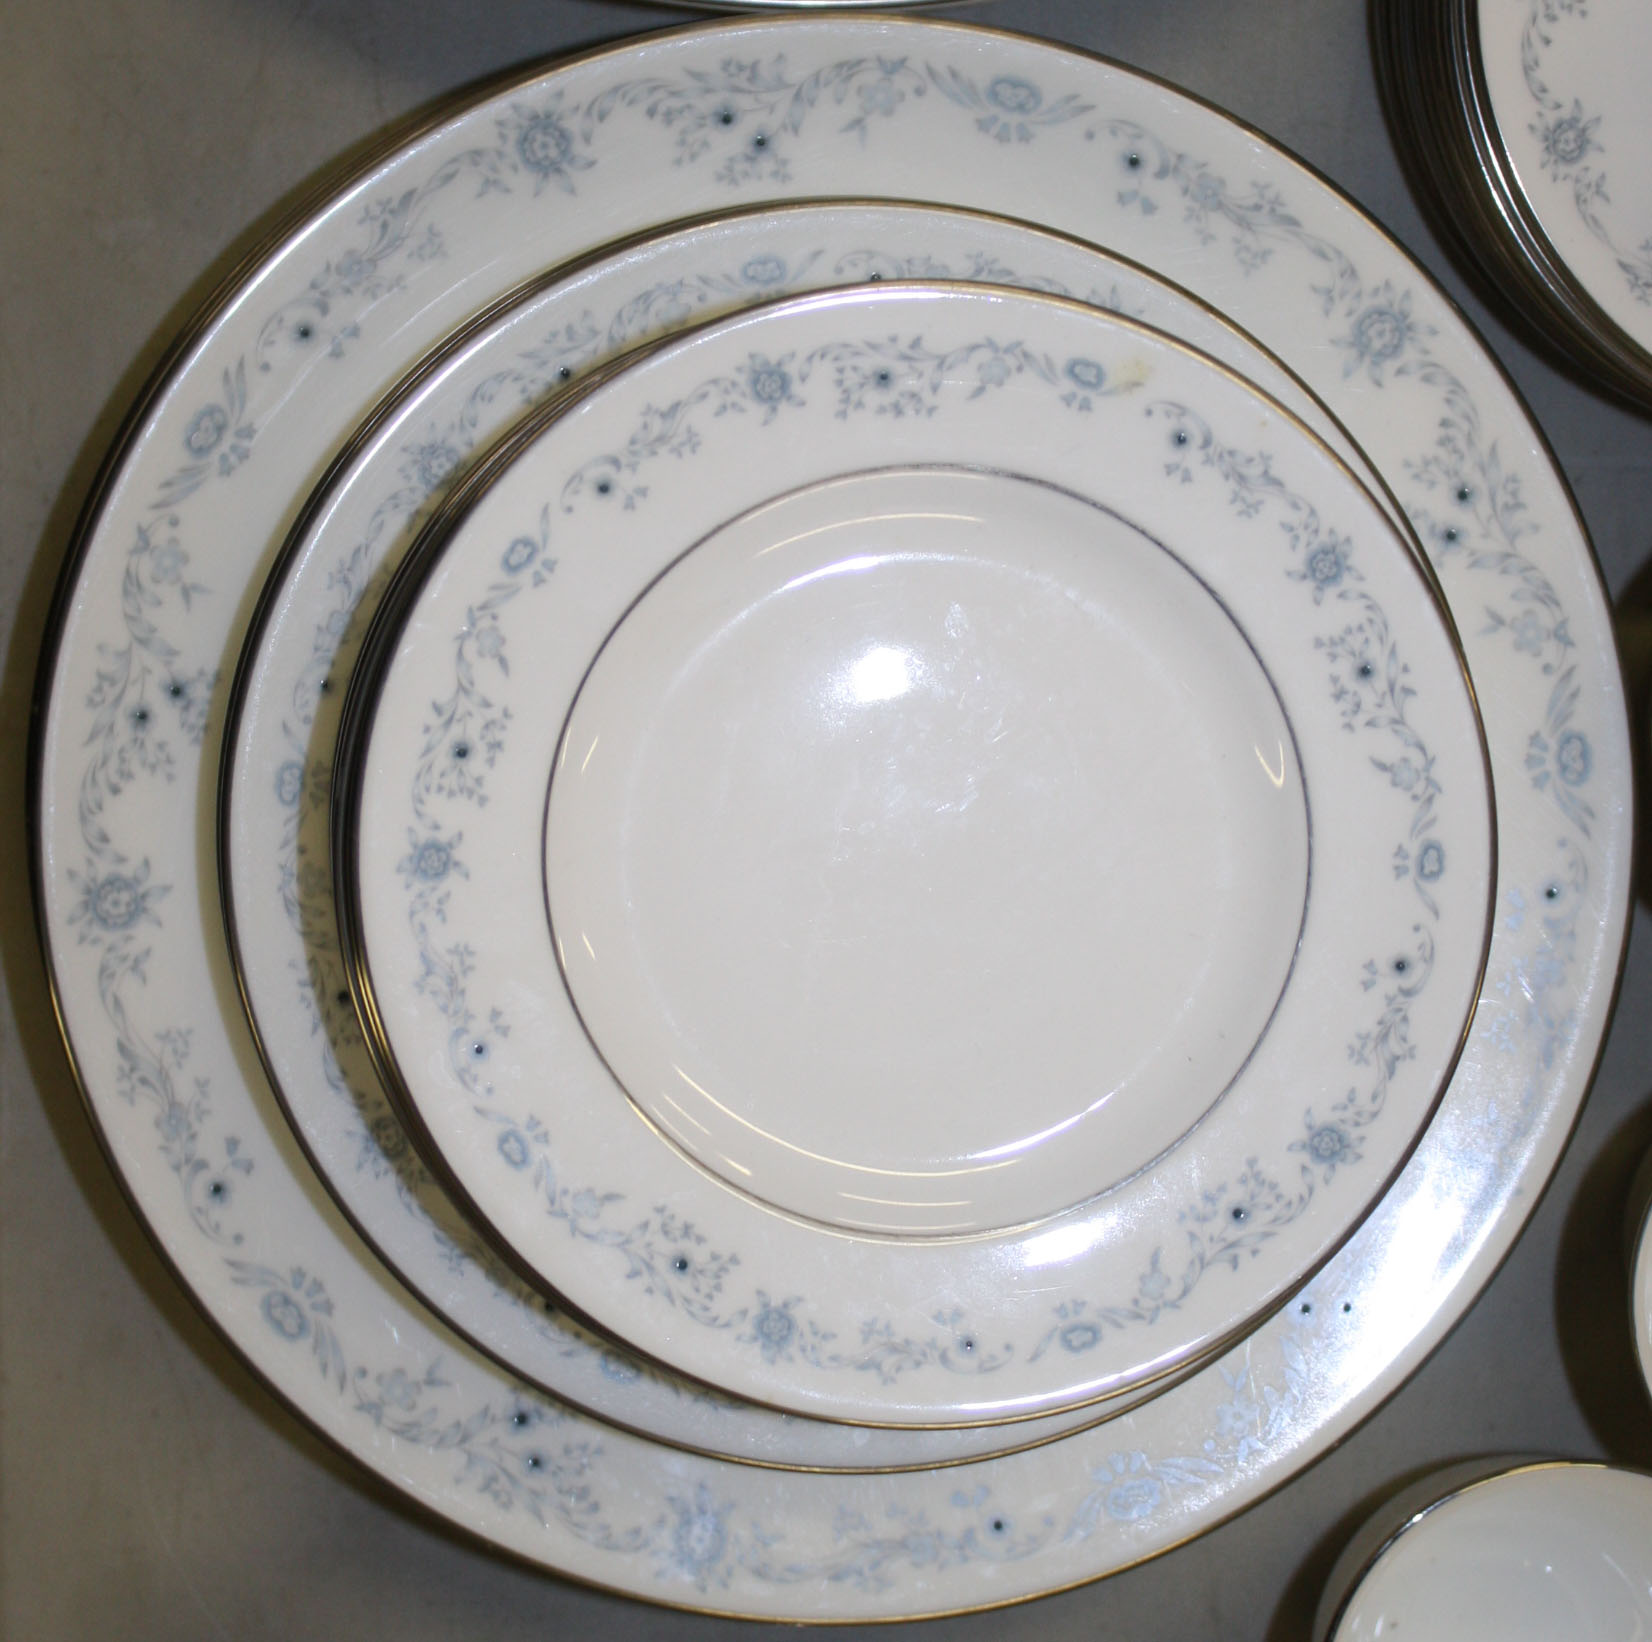 Royal Doulton Angelique pattern china.JPG & Royal Doulton Angelique pattern china.JPG | Merrillu0027s Auction